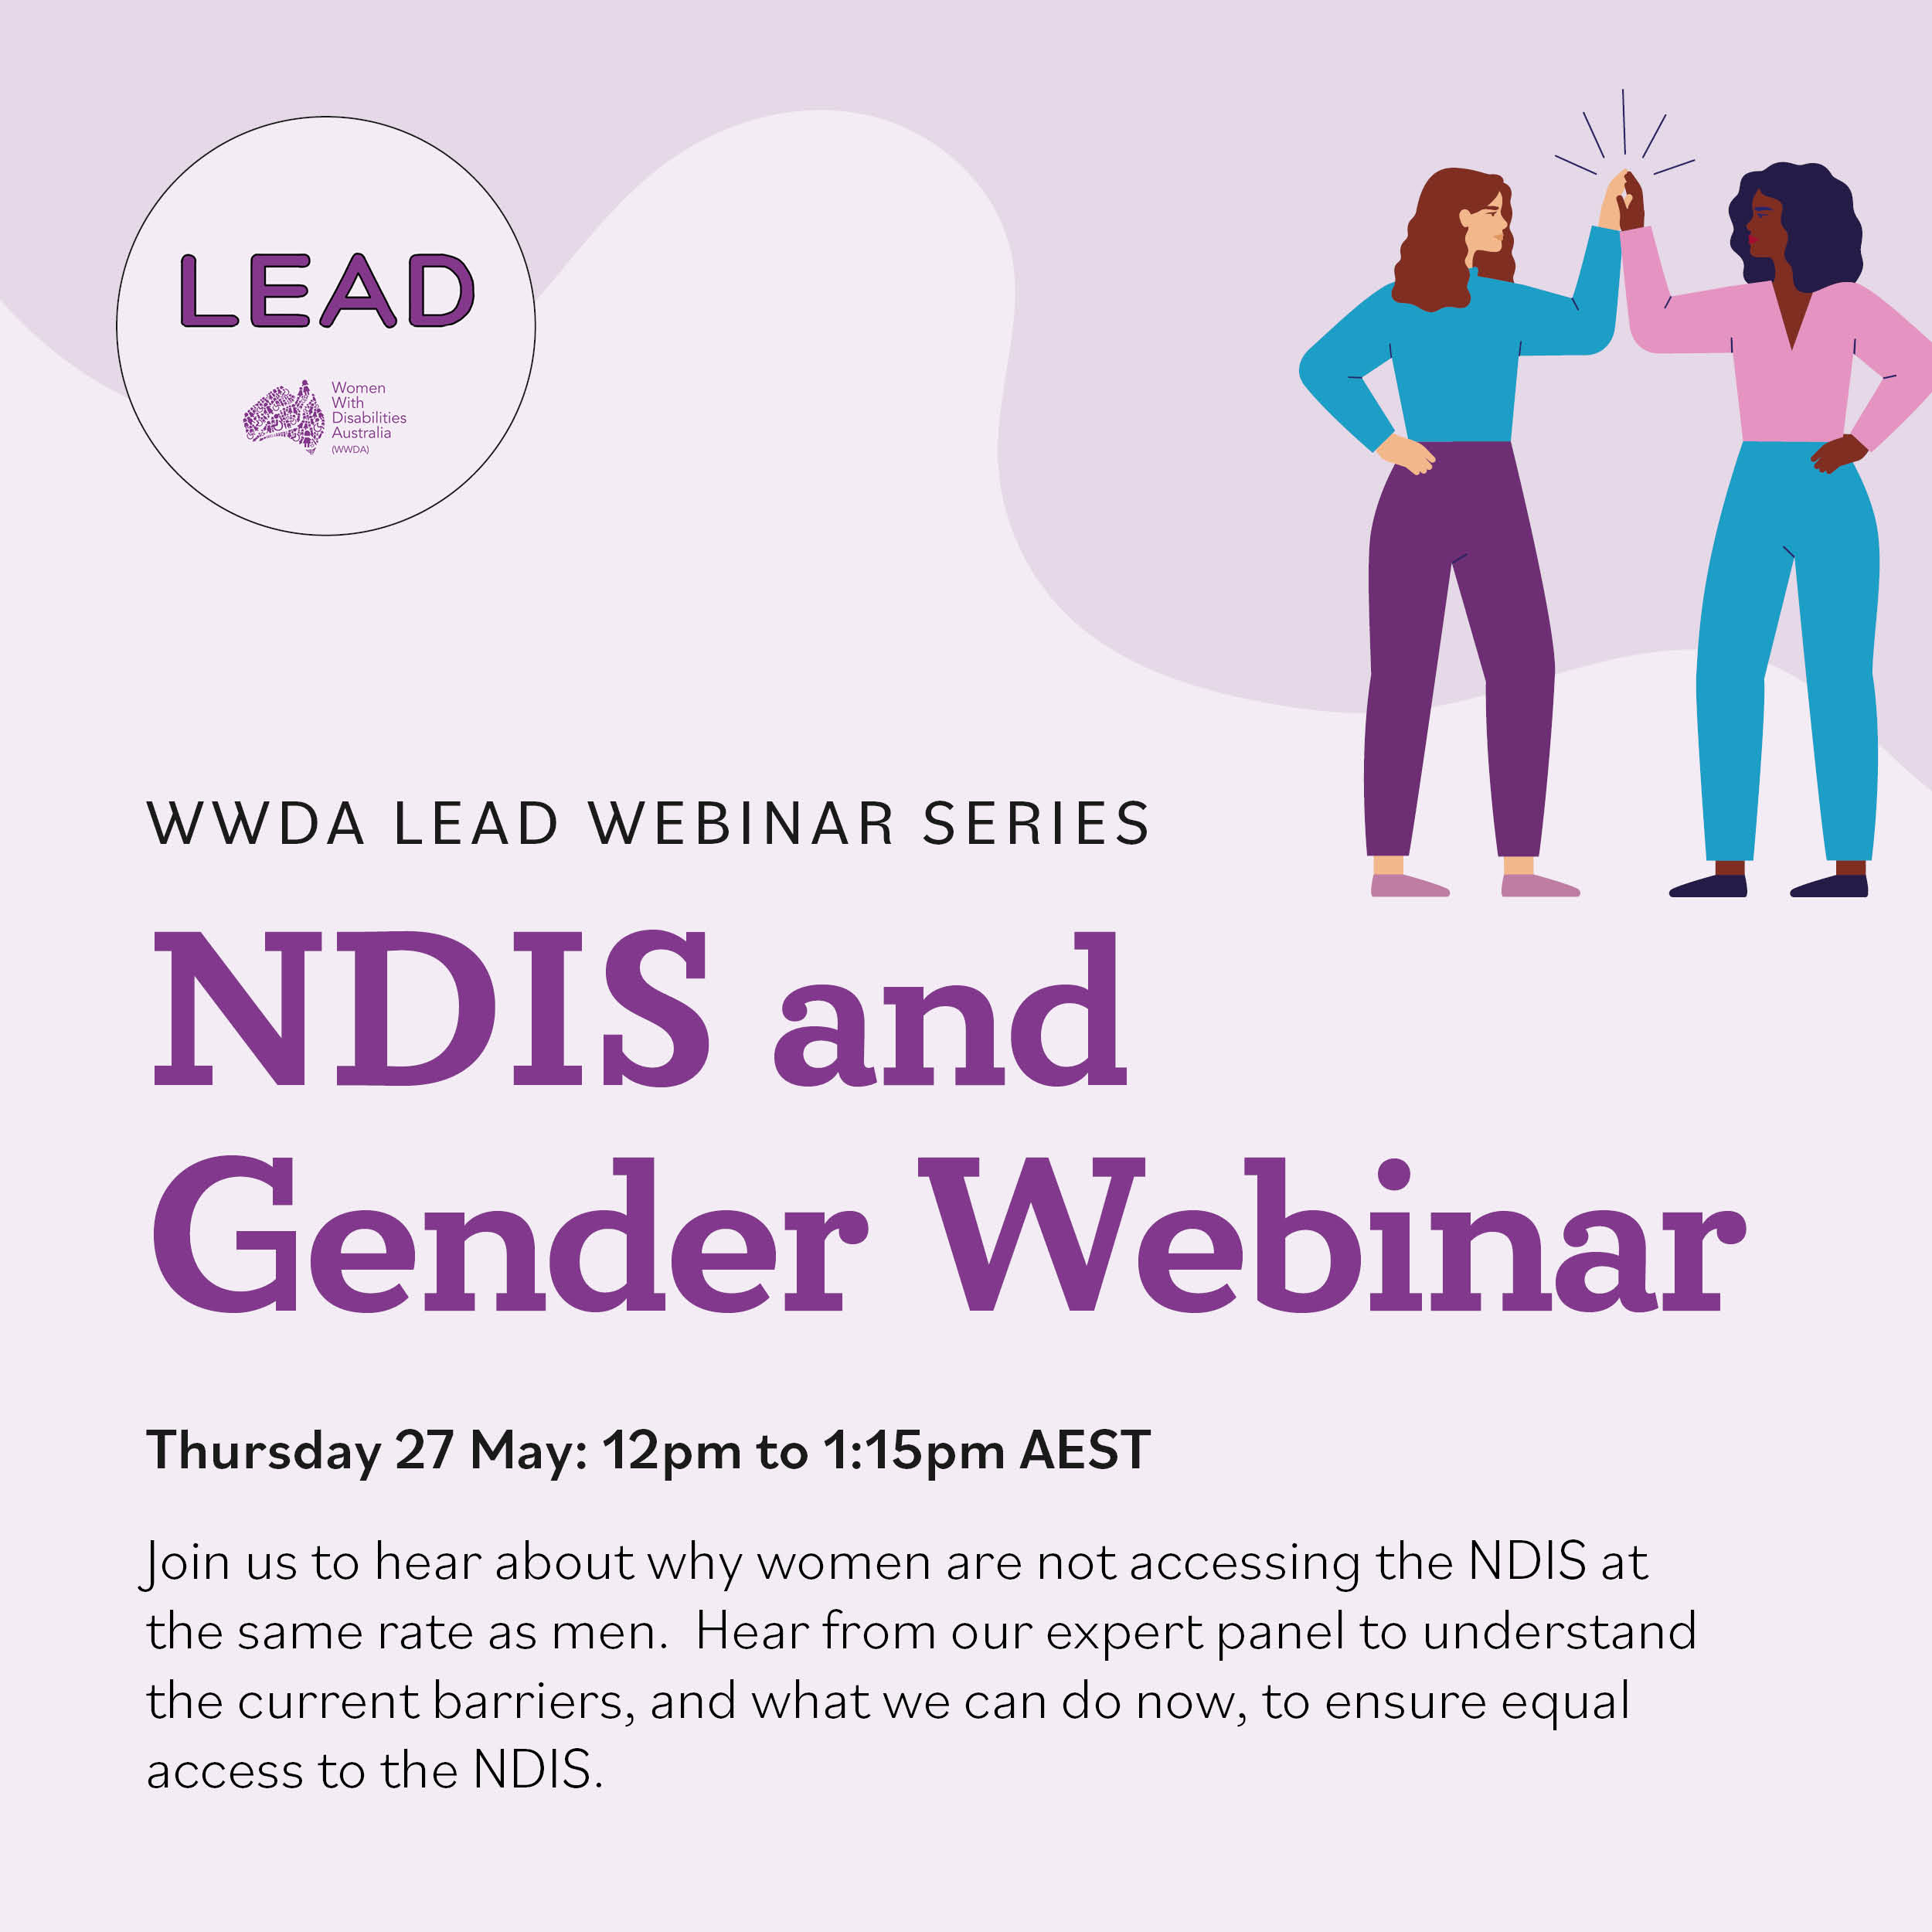 Light purple background, dark purple heading NDIS and Gender Webinar. Includes an illustration of two women giving each other a high 5.